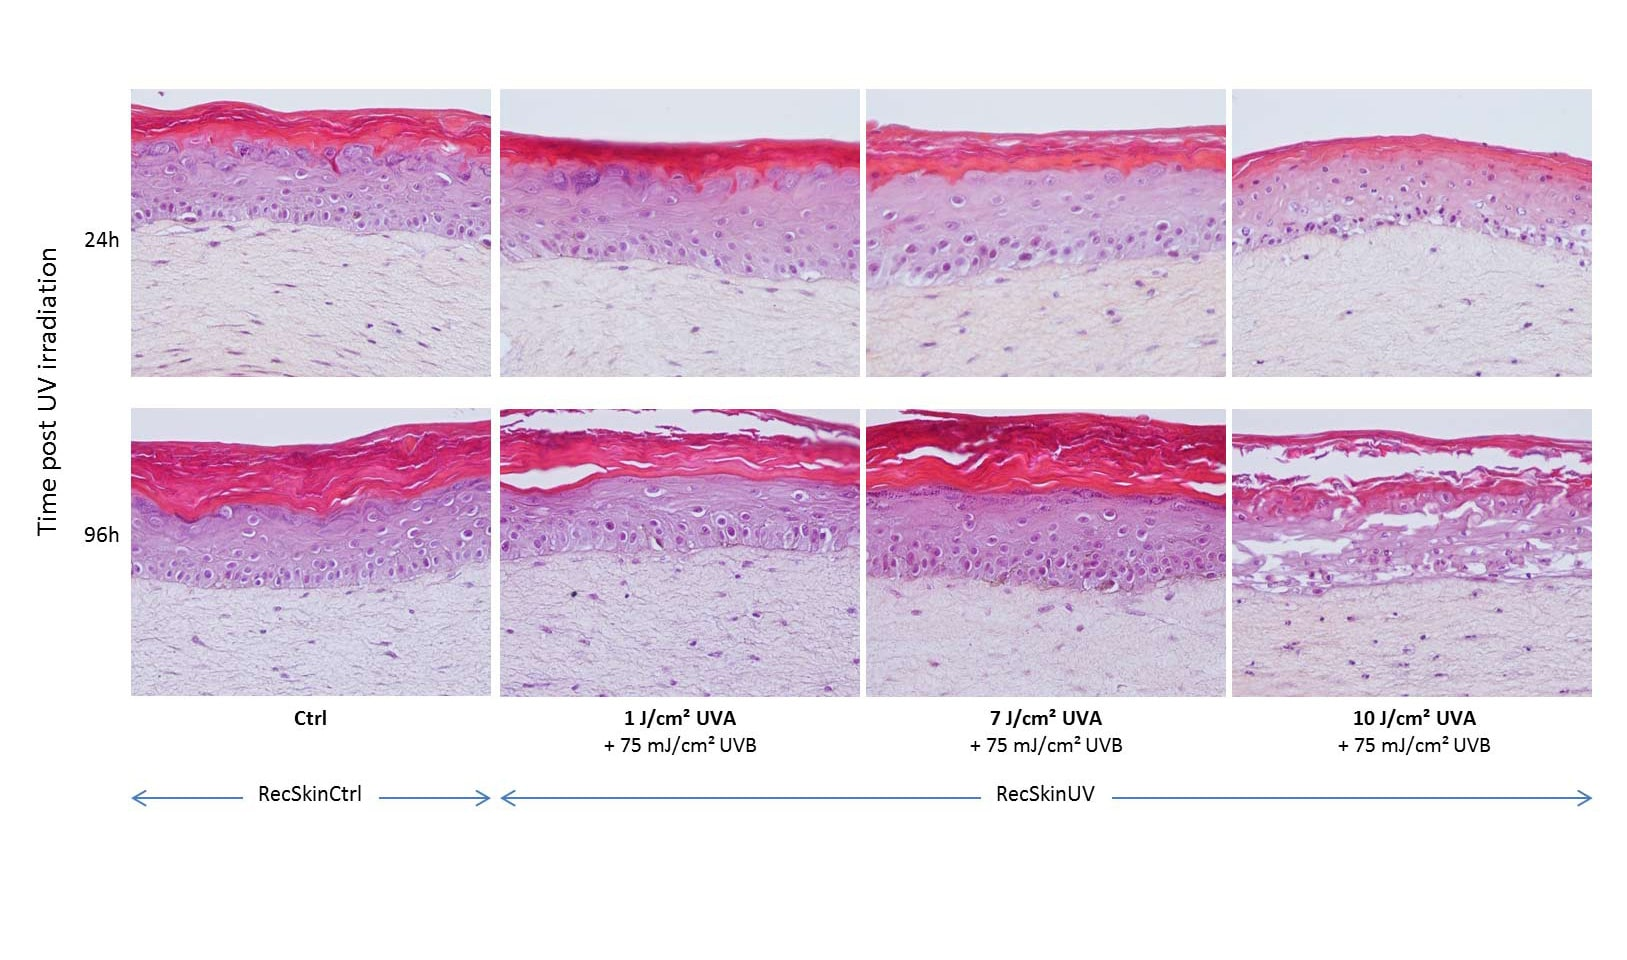 IHC skin photoaging irradiations